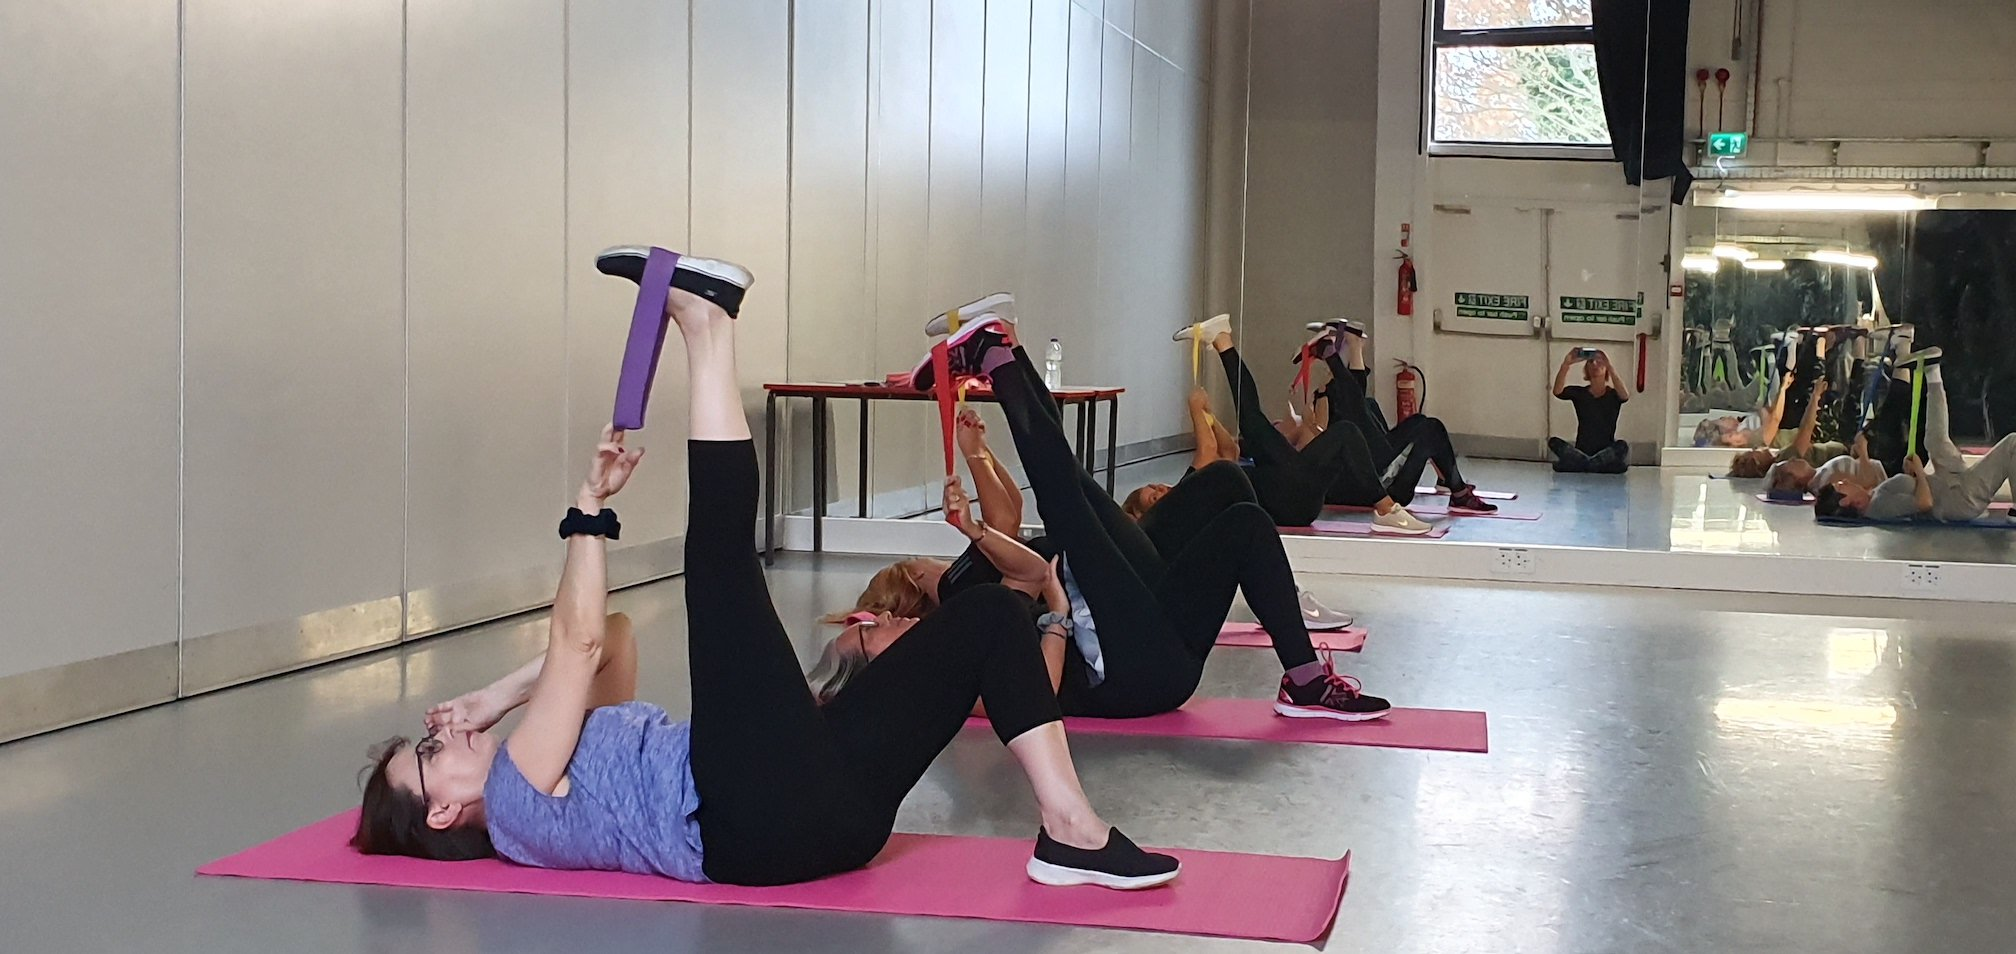 Stretching in exercise class